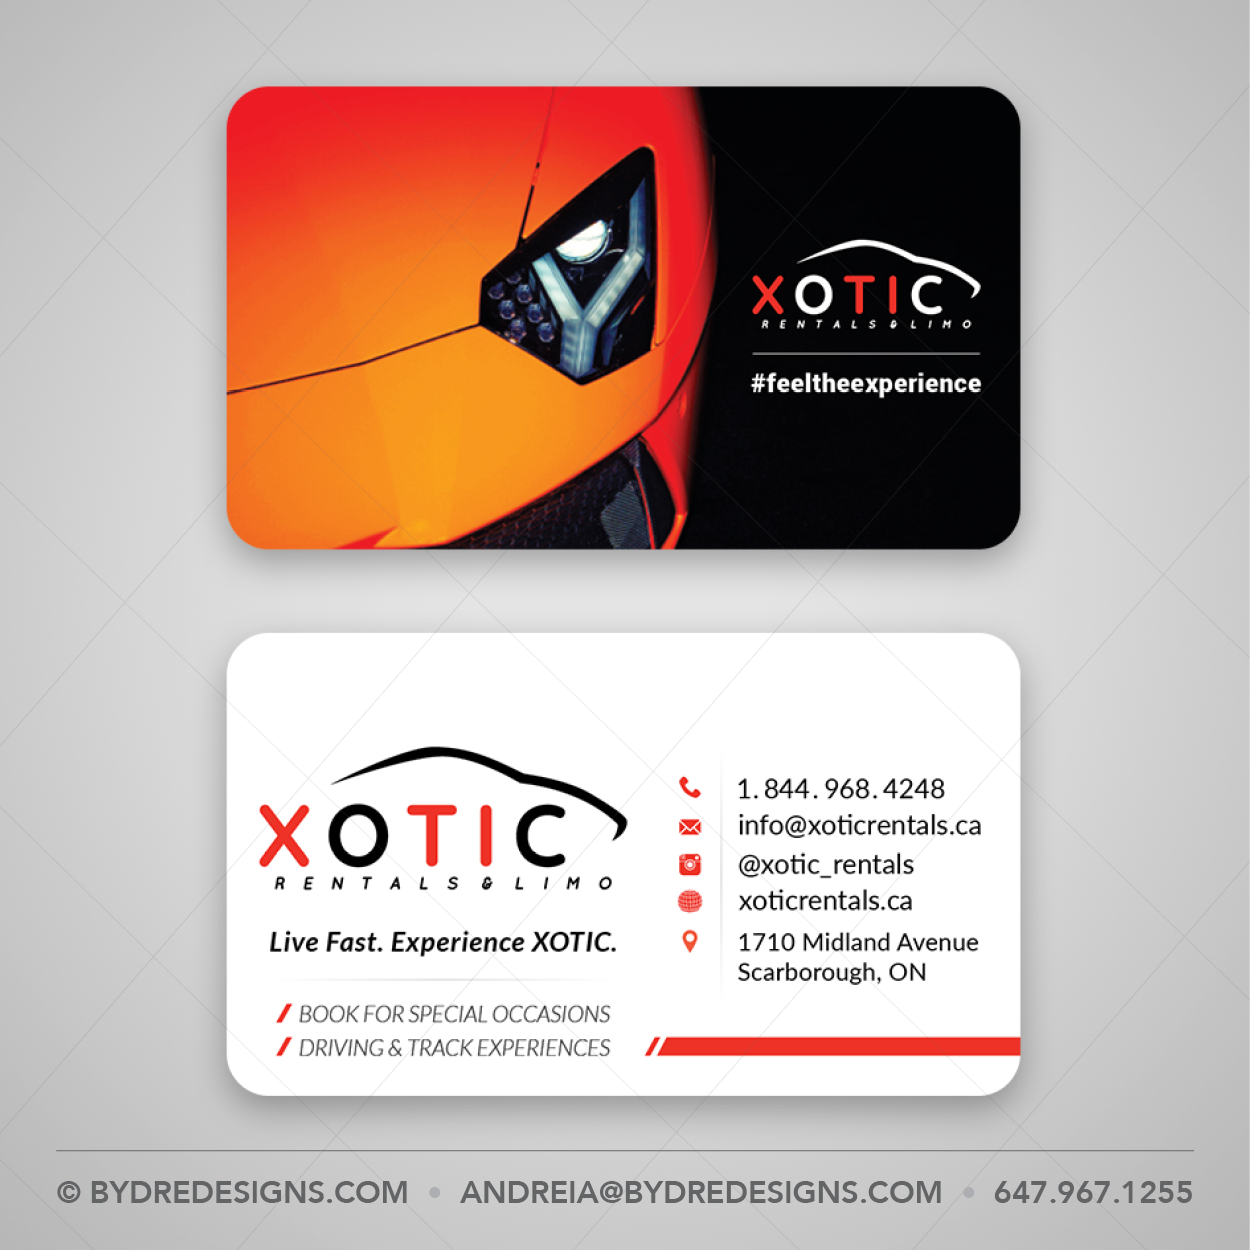 Business Card Design & Print on 20PT Plastic Cards for Xotic Rentals ...